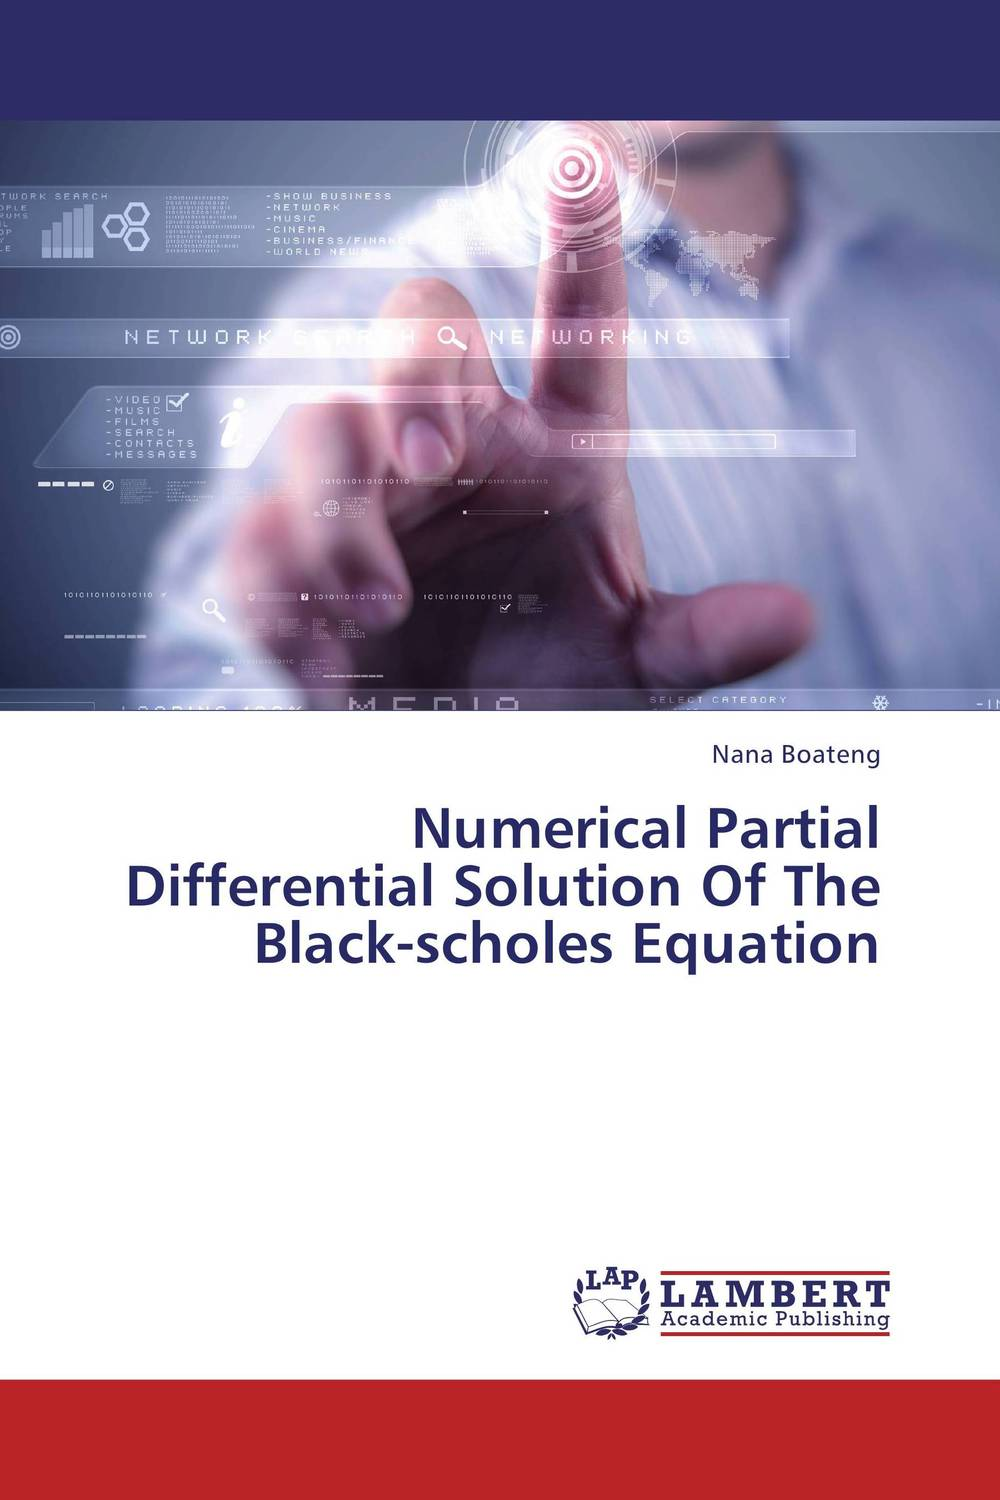 Numerical Partial Differential Solution Of The Black-scholes Equation analytical and numerical approximation solution of bio heat equation